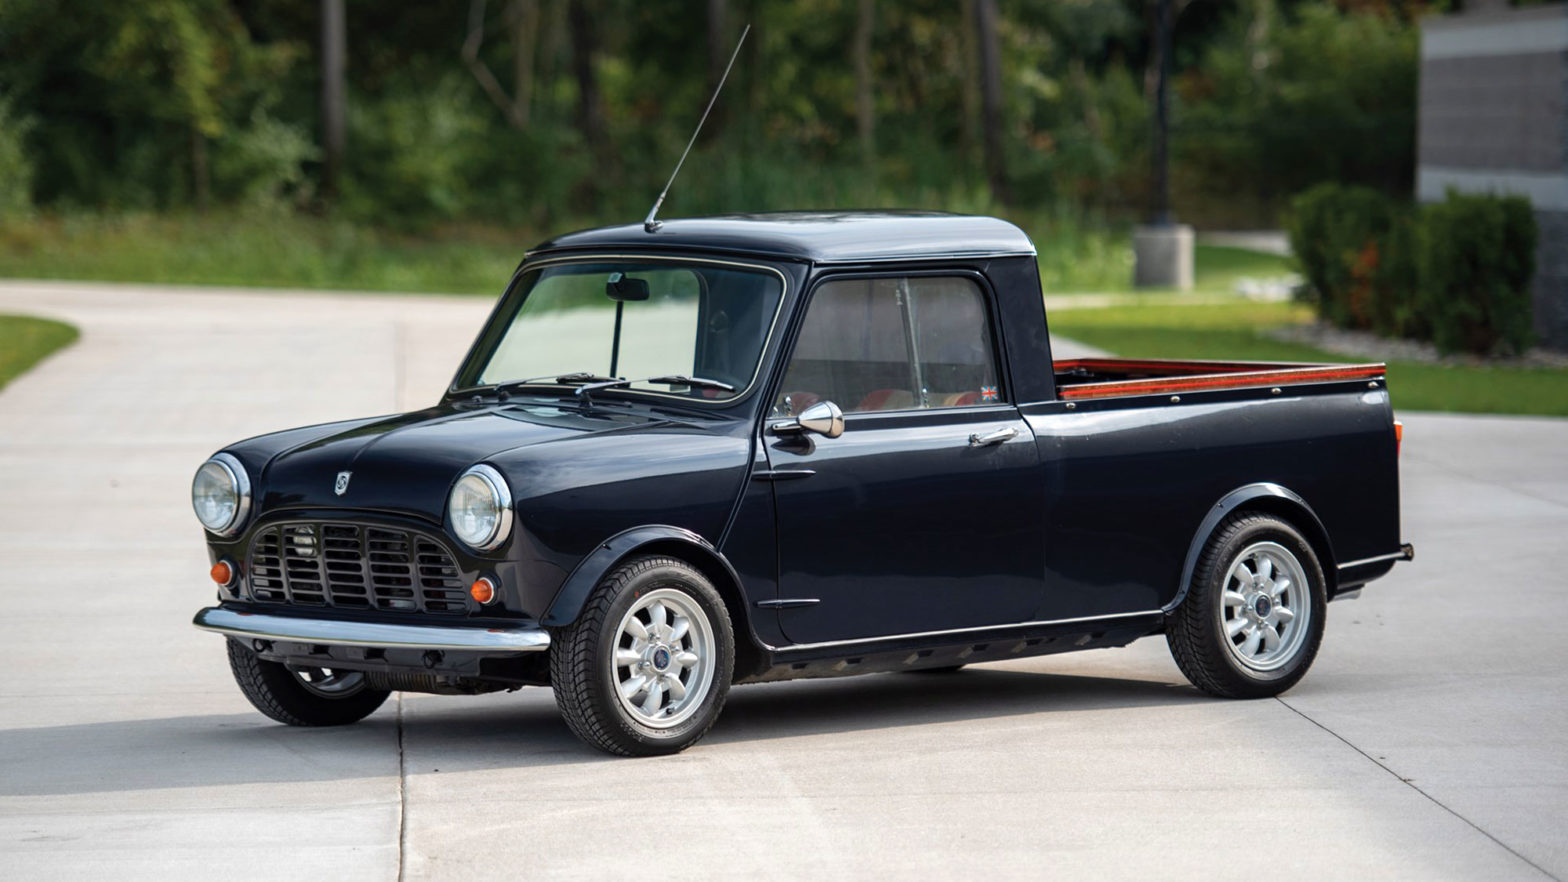 1972 Austin Mini Pickup RM Sotheby's Auction